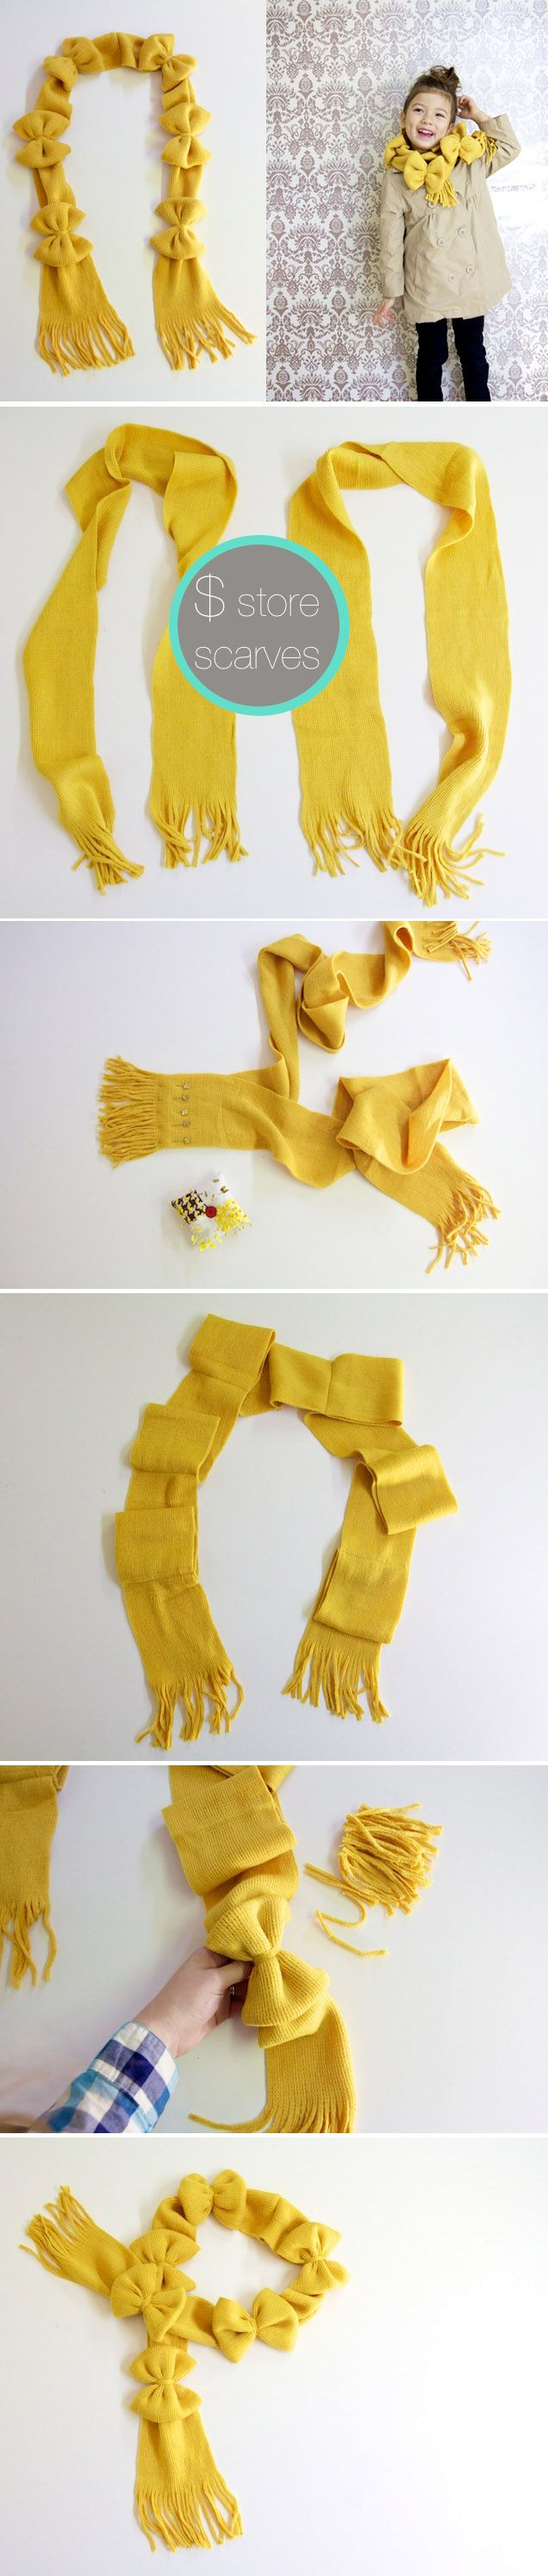 DIY Bows Scarf Tutorial